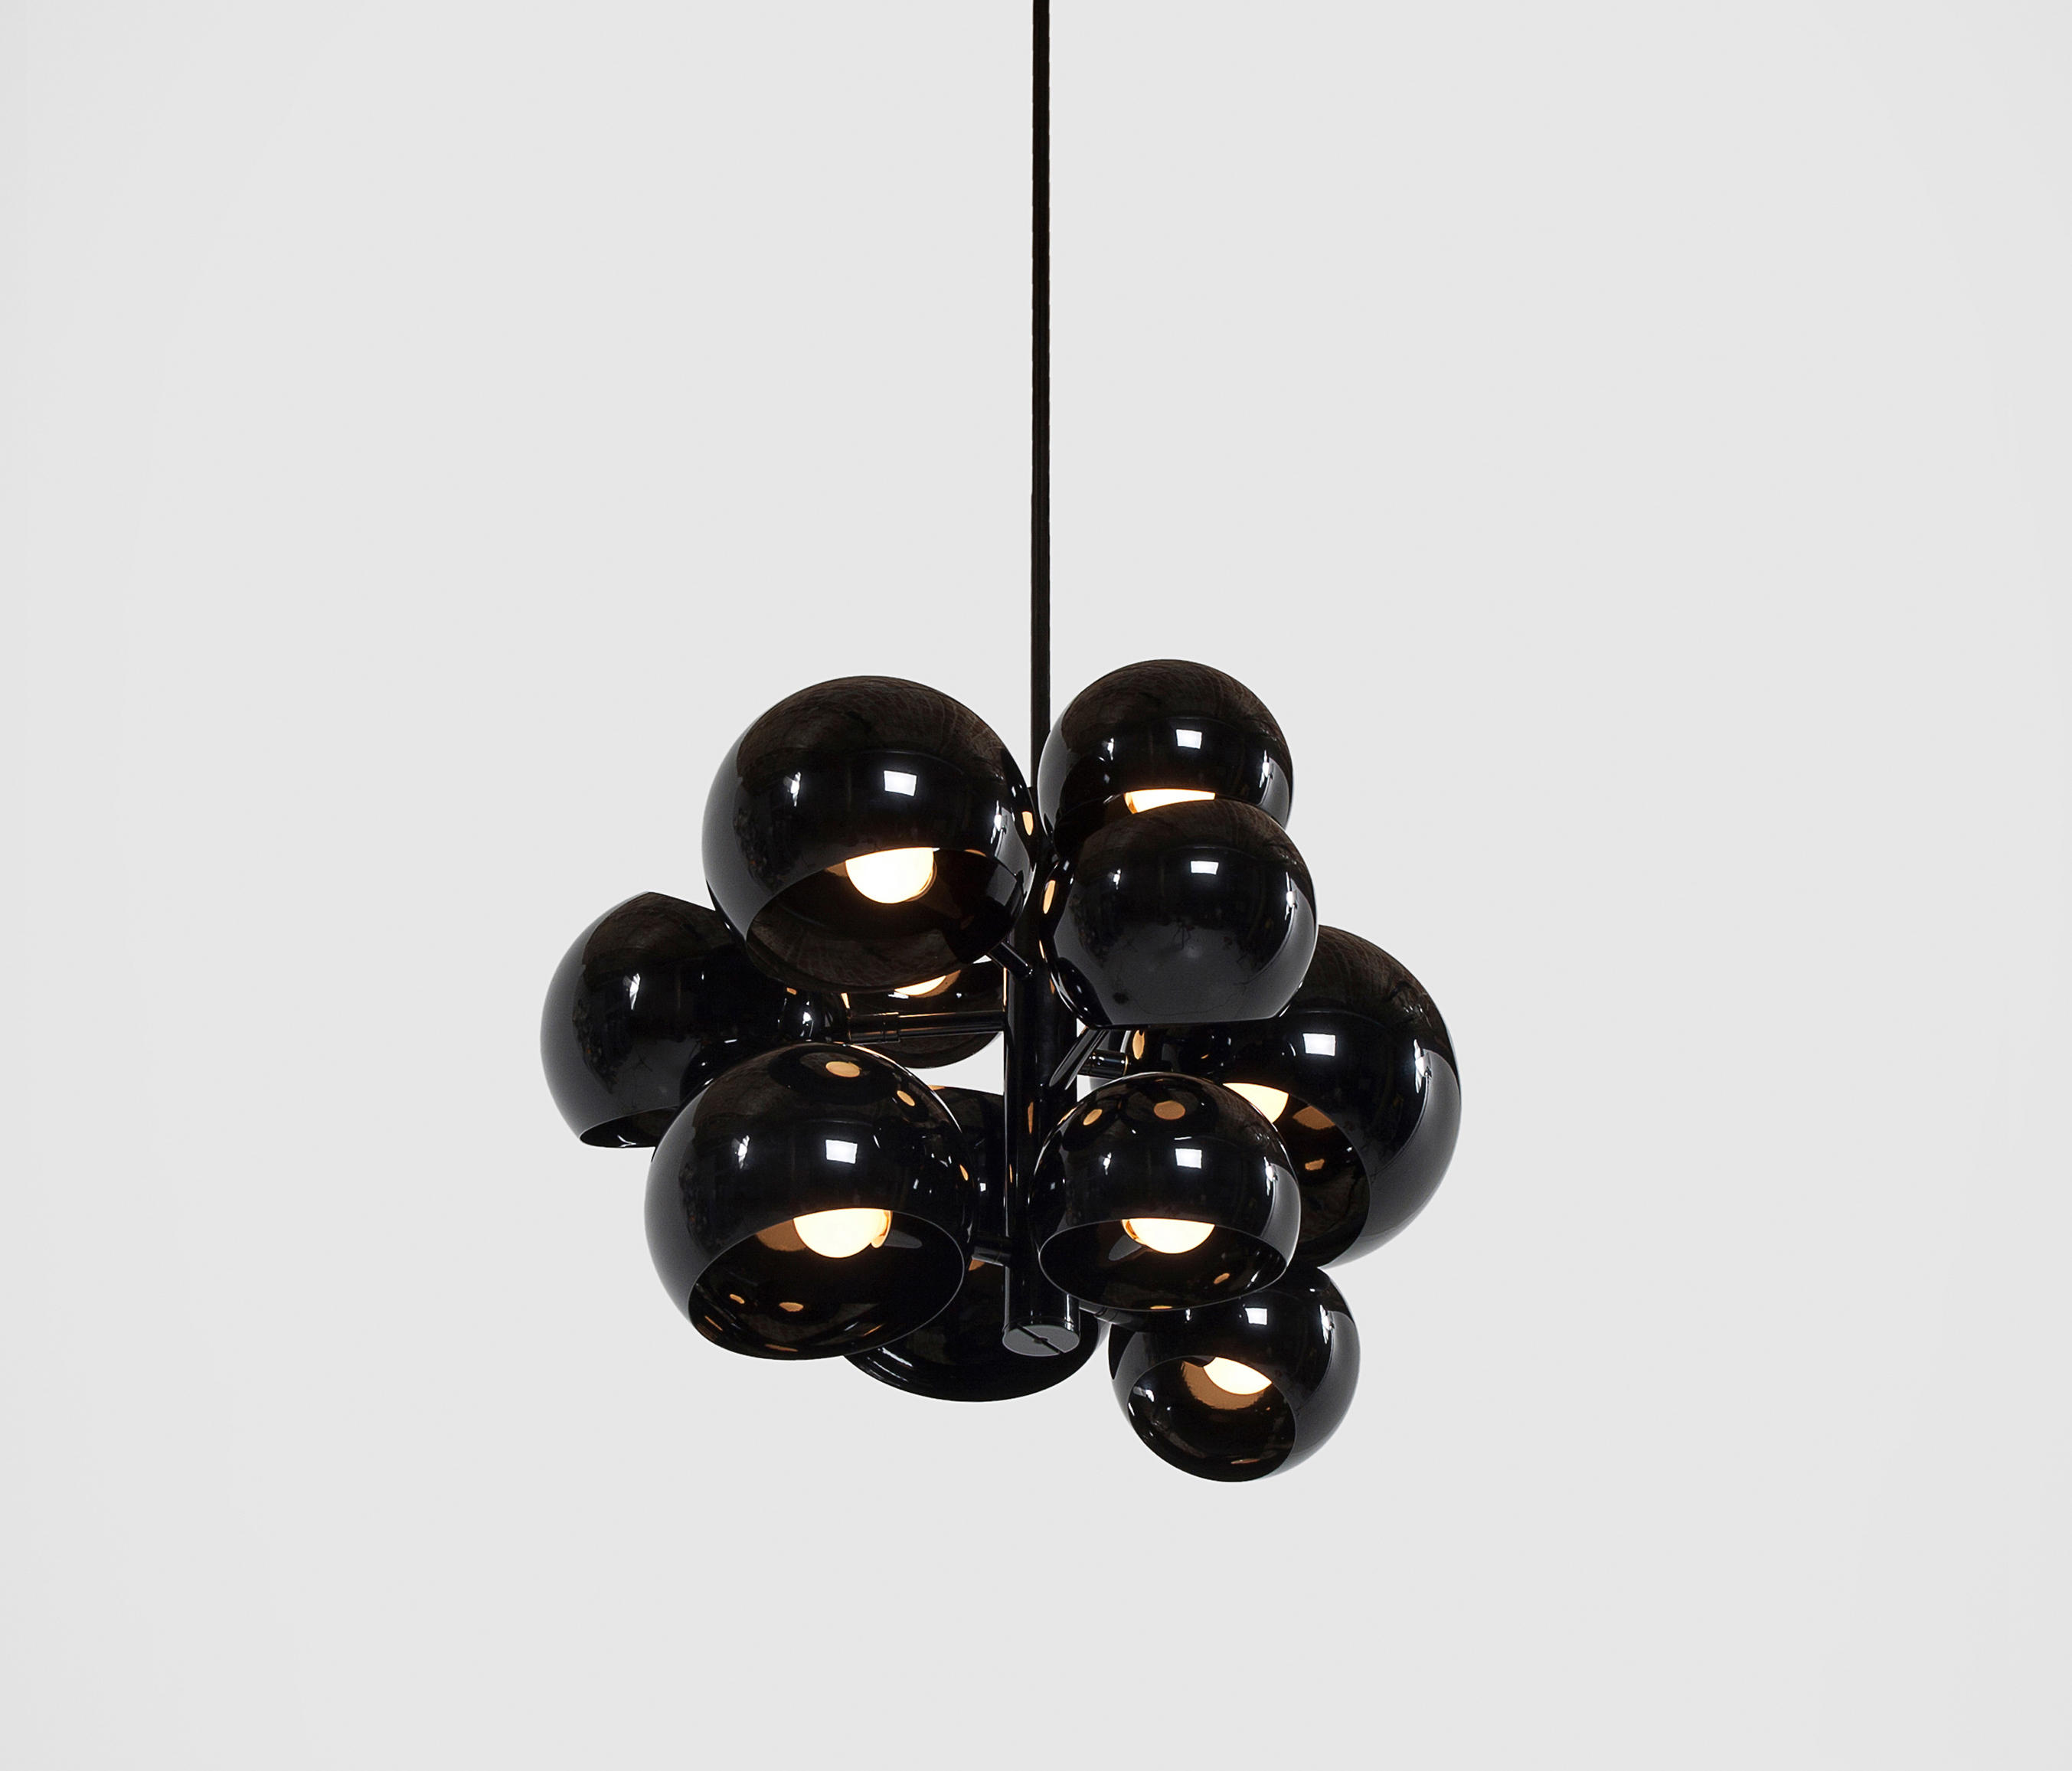 KOPRA CLUSTER NO 434 General lighting from David Weeks Studio